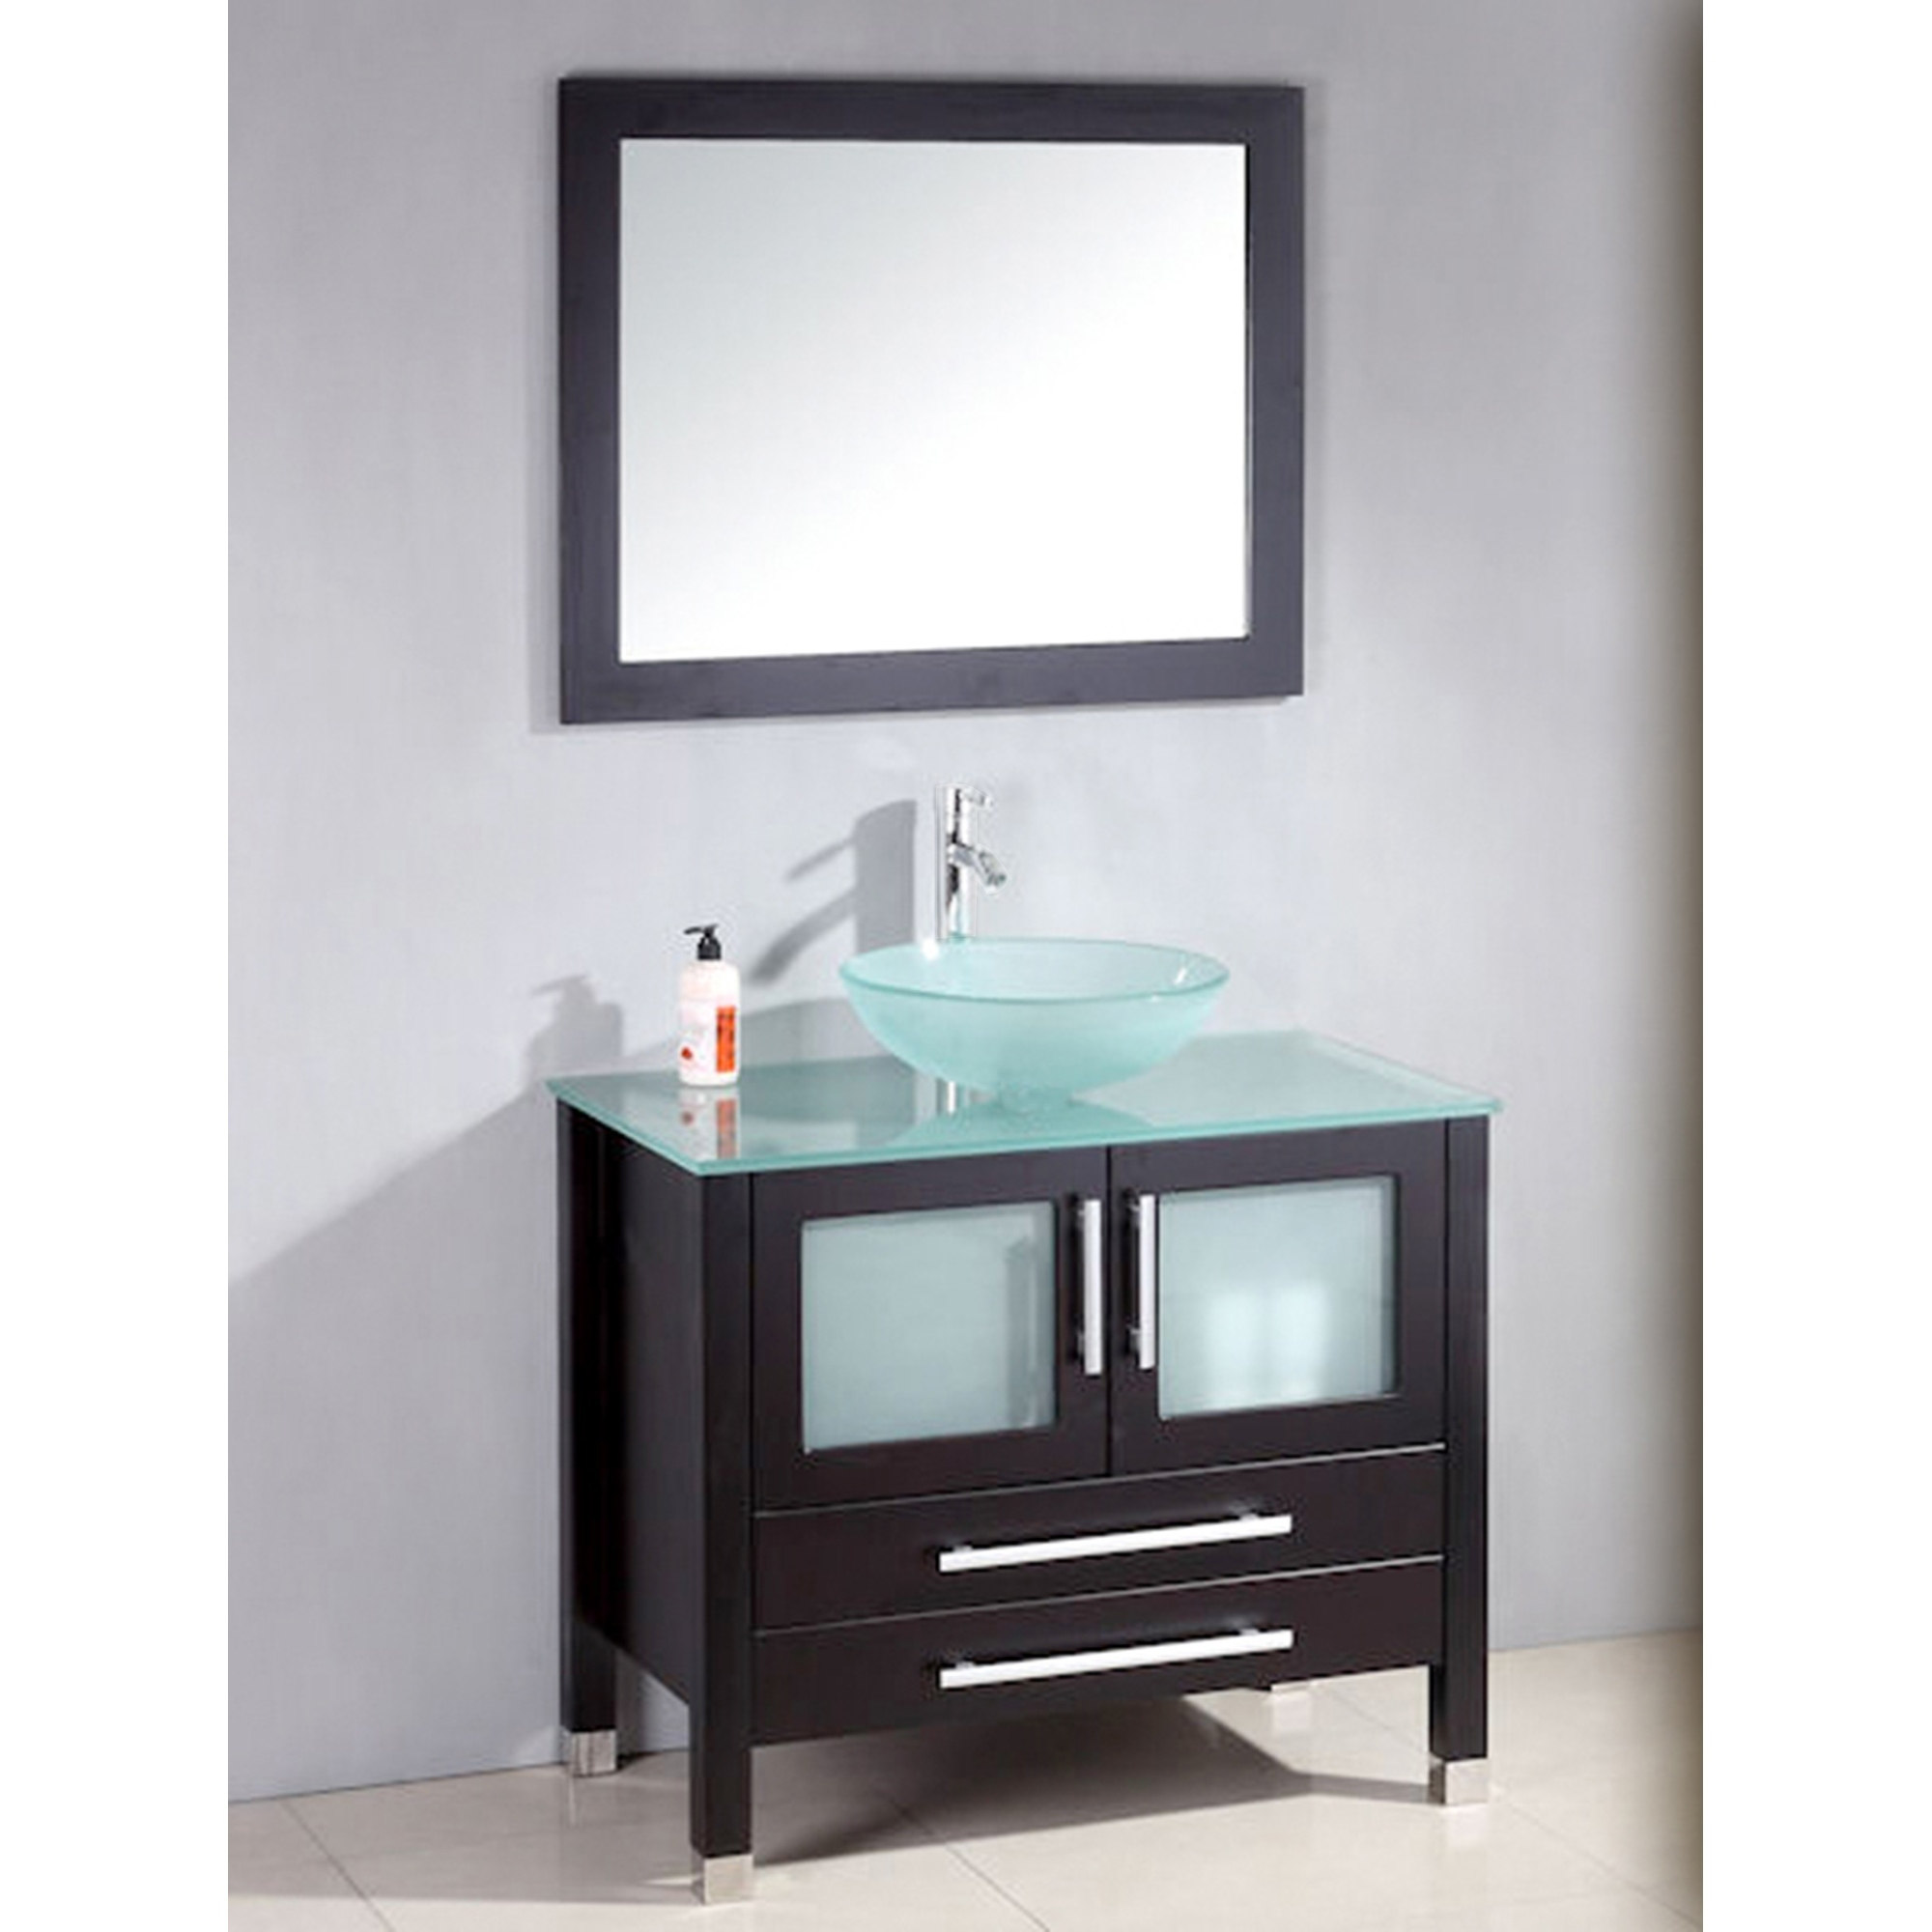 Cambridge Plumbing 36 inch Solid Wood Glass Vessel Sink Set with Brushed Nickel faucet.